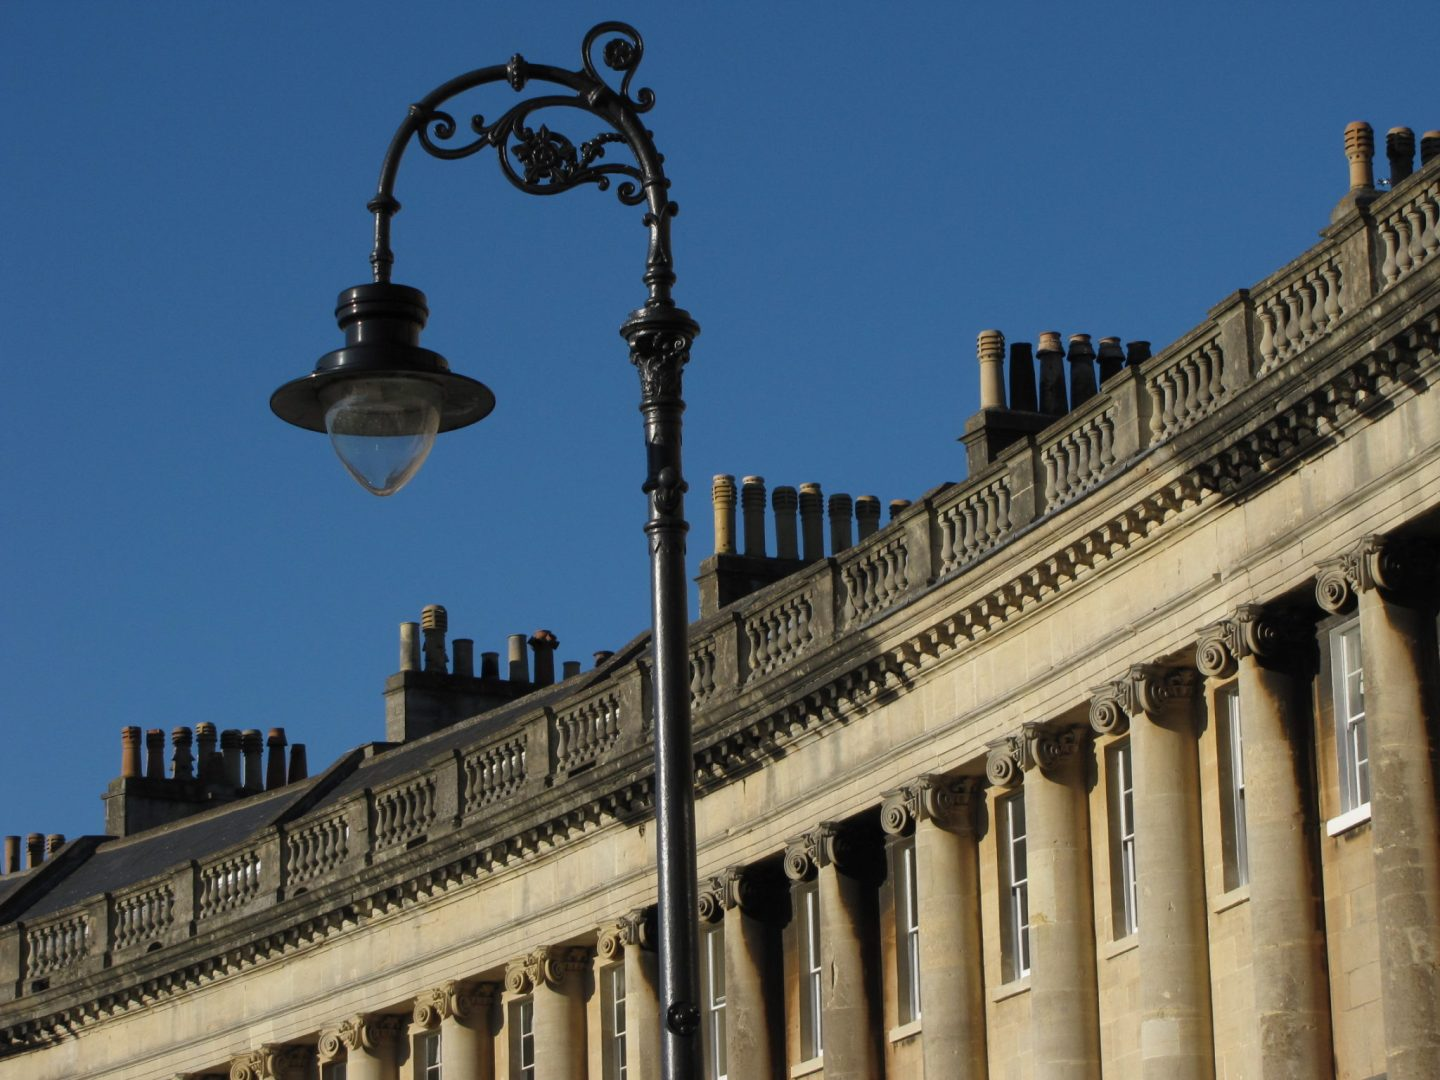 Detail of a streetlight at the Royal Crescent, Bath, England